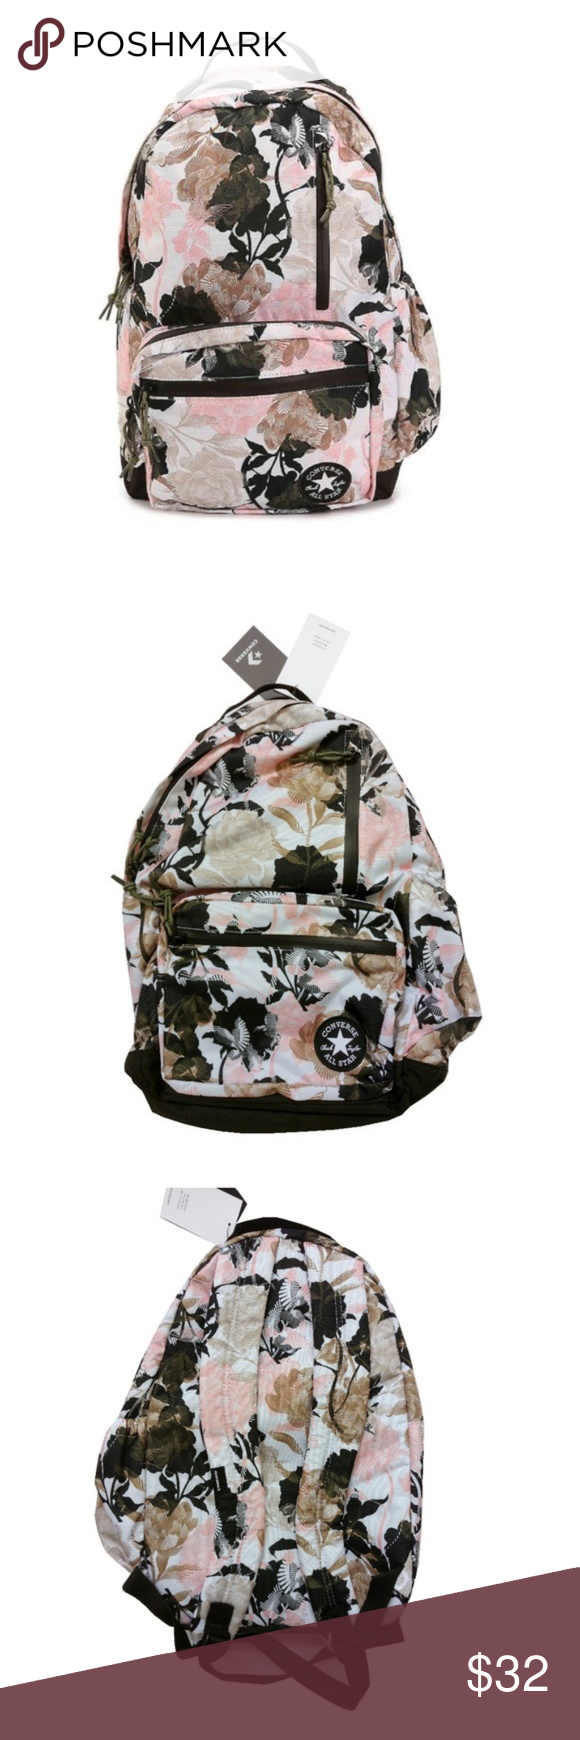 18b2c2f1bc880e Converse Pink Floral   Olive Green Backpack Bag Converse Pin Olive Green  Backpack Chuck Taylor Bag